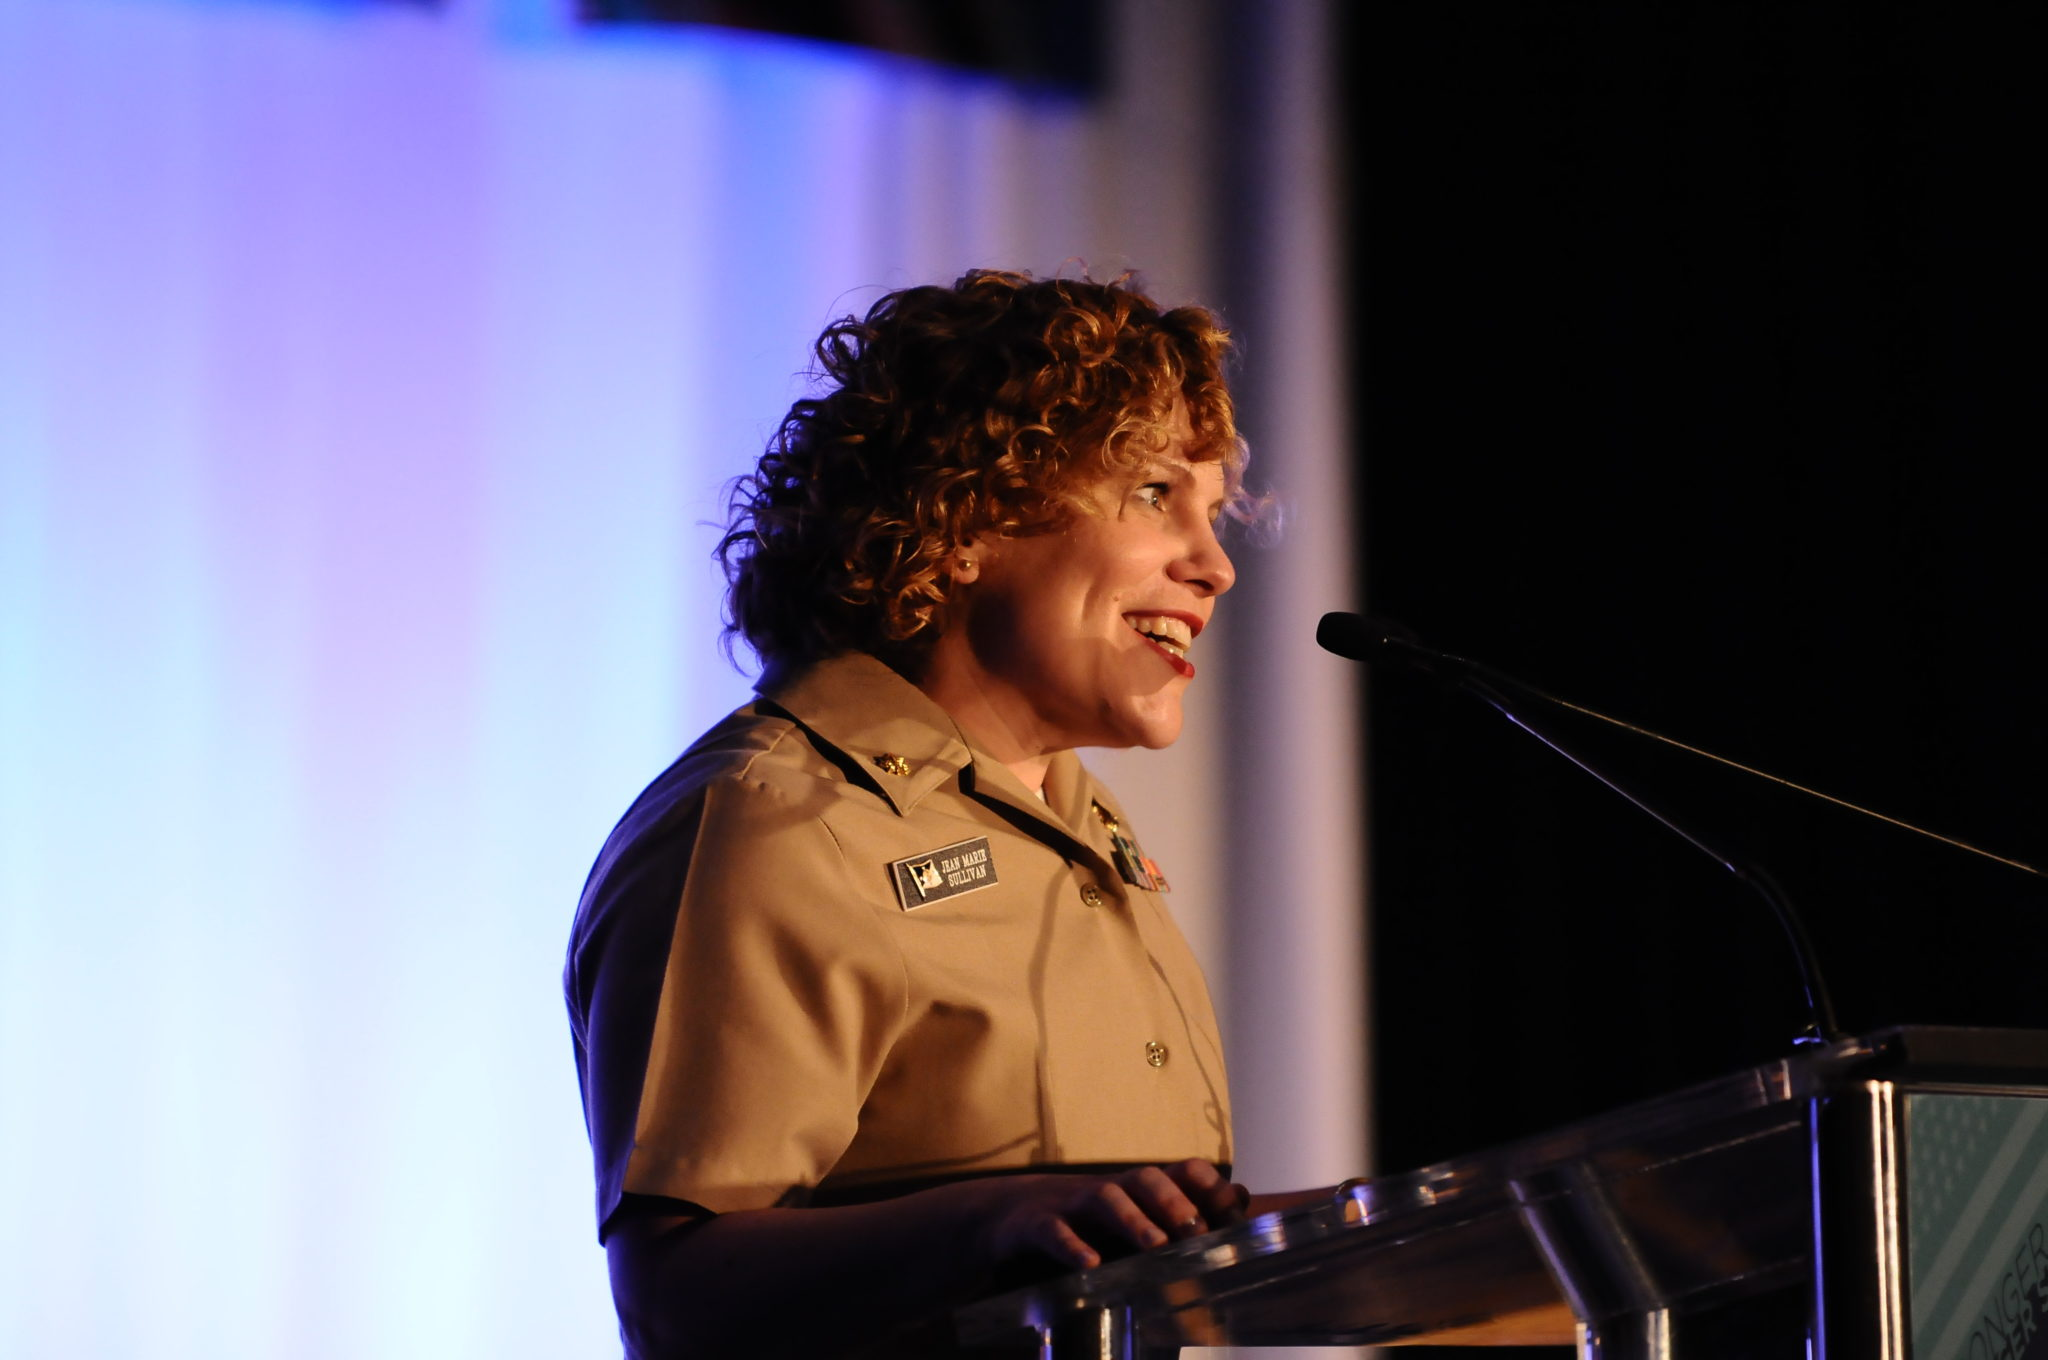 Nina Foster: My First Meeting with LCDR Sullivan